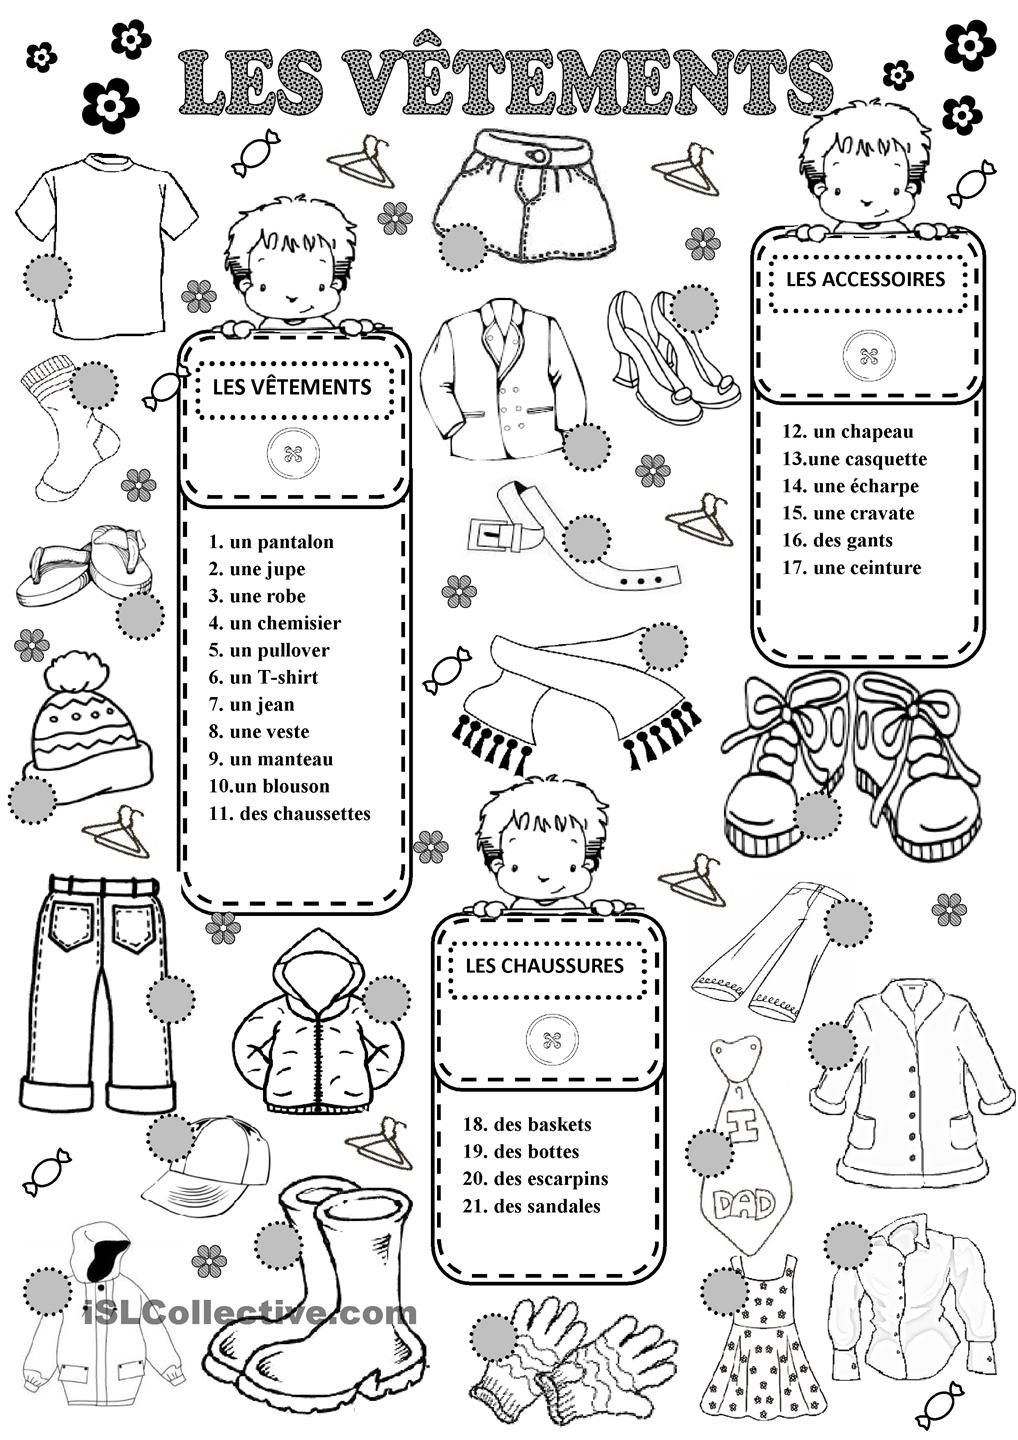 Chapter 7 This illustration shows many of the vocab terms we